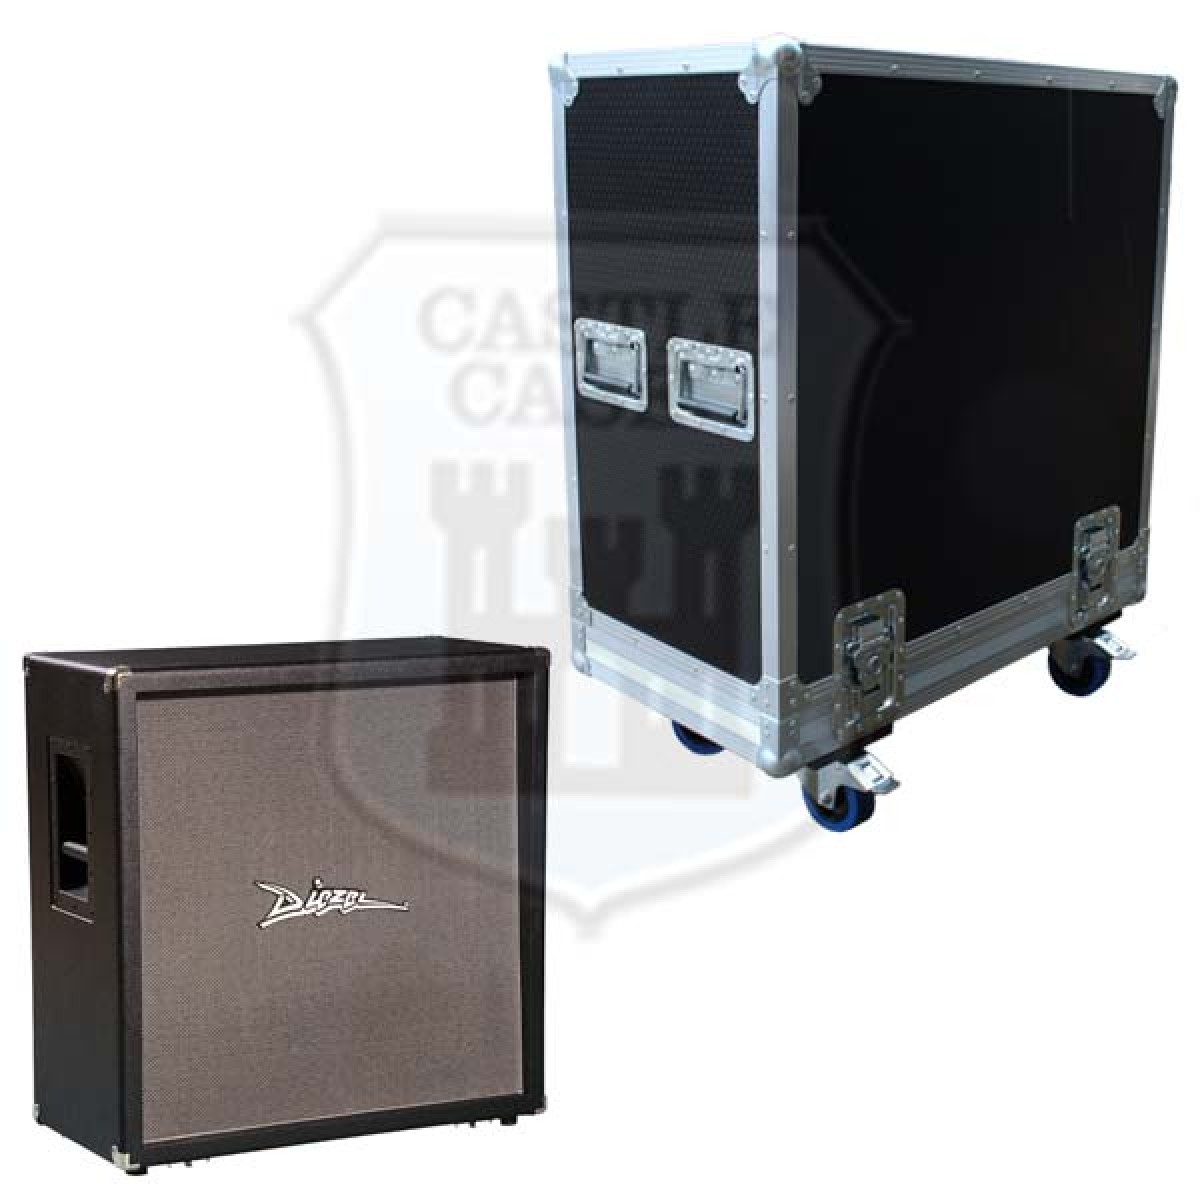 Diezel 412 Rear Loaded Flightcase